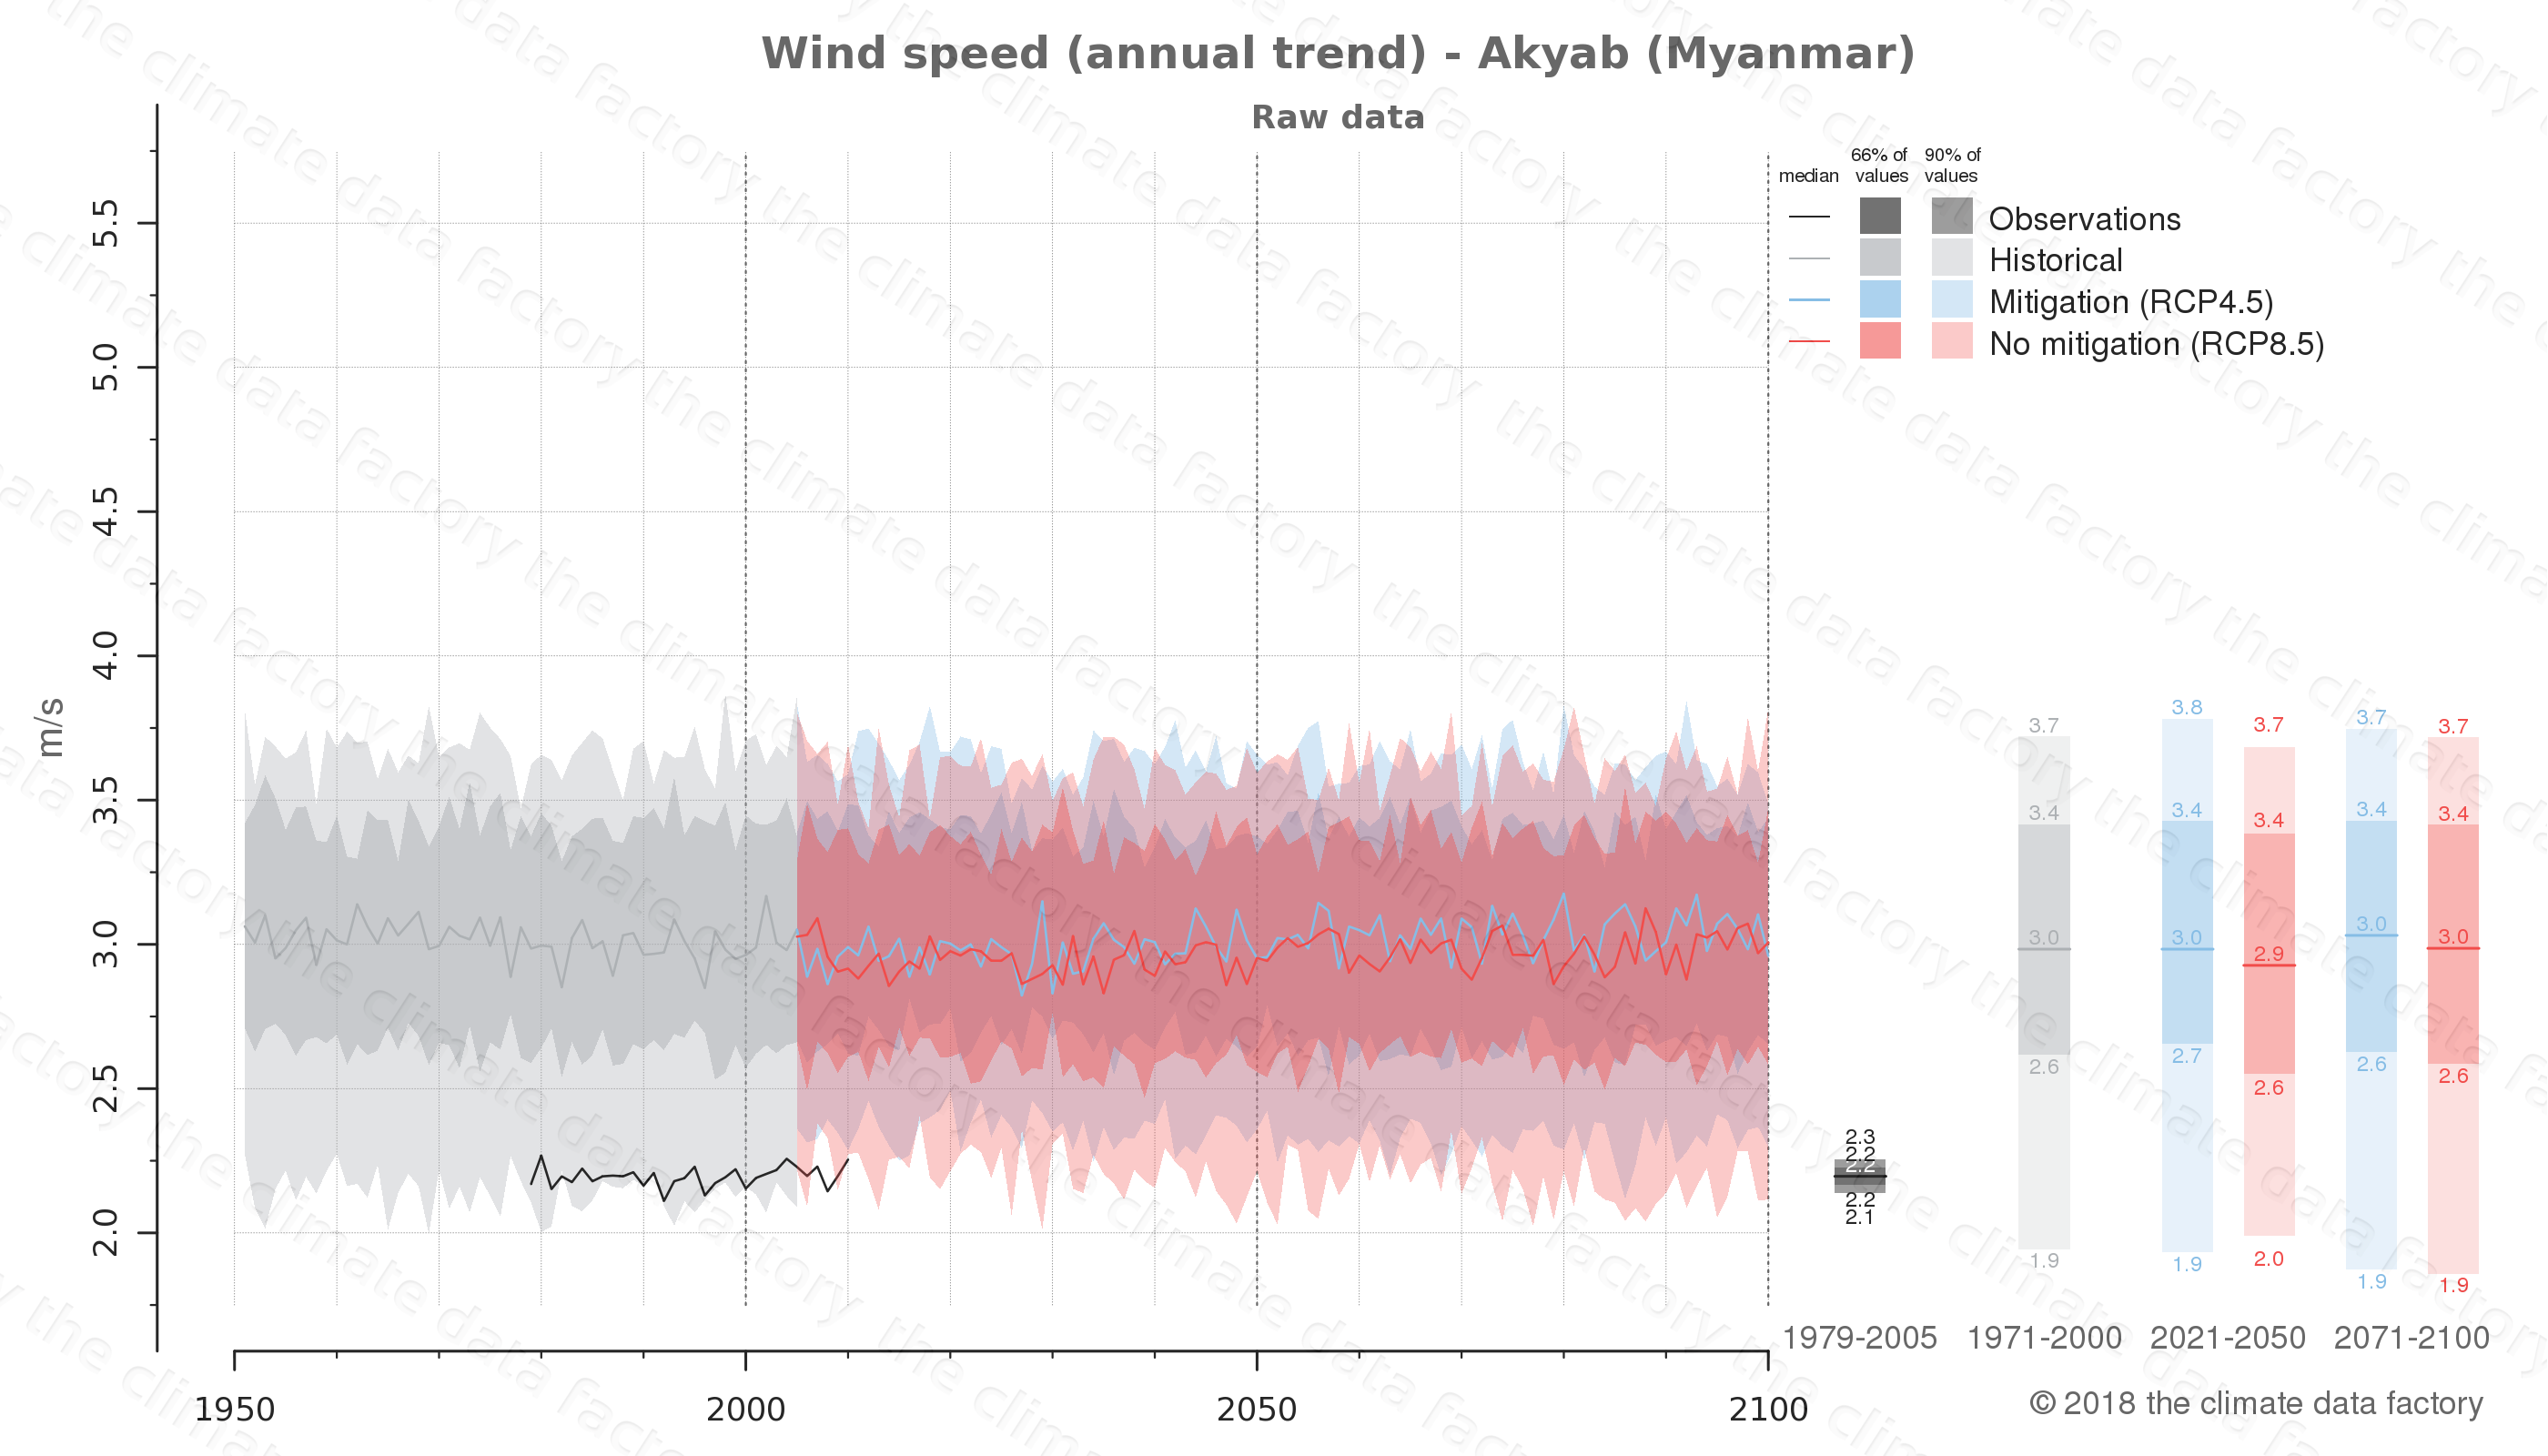 climate change data policy adaptation climate graph city data wind-speed akyab myanmar